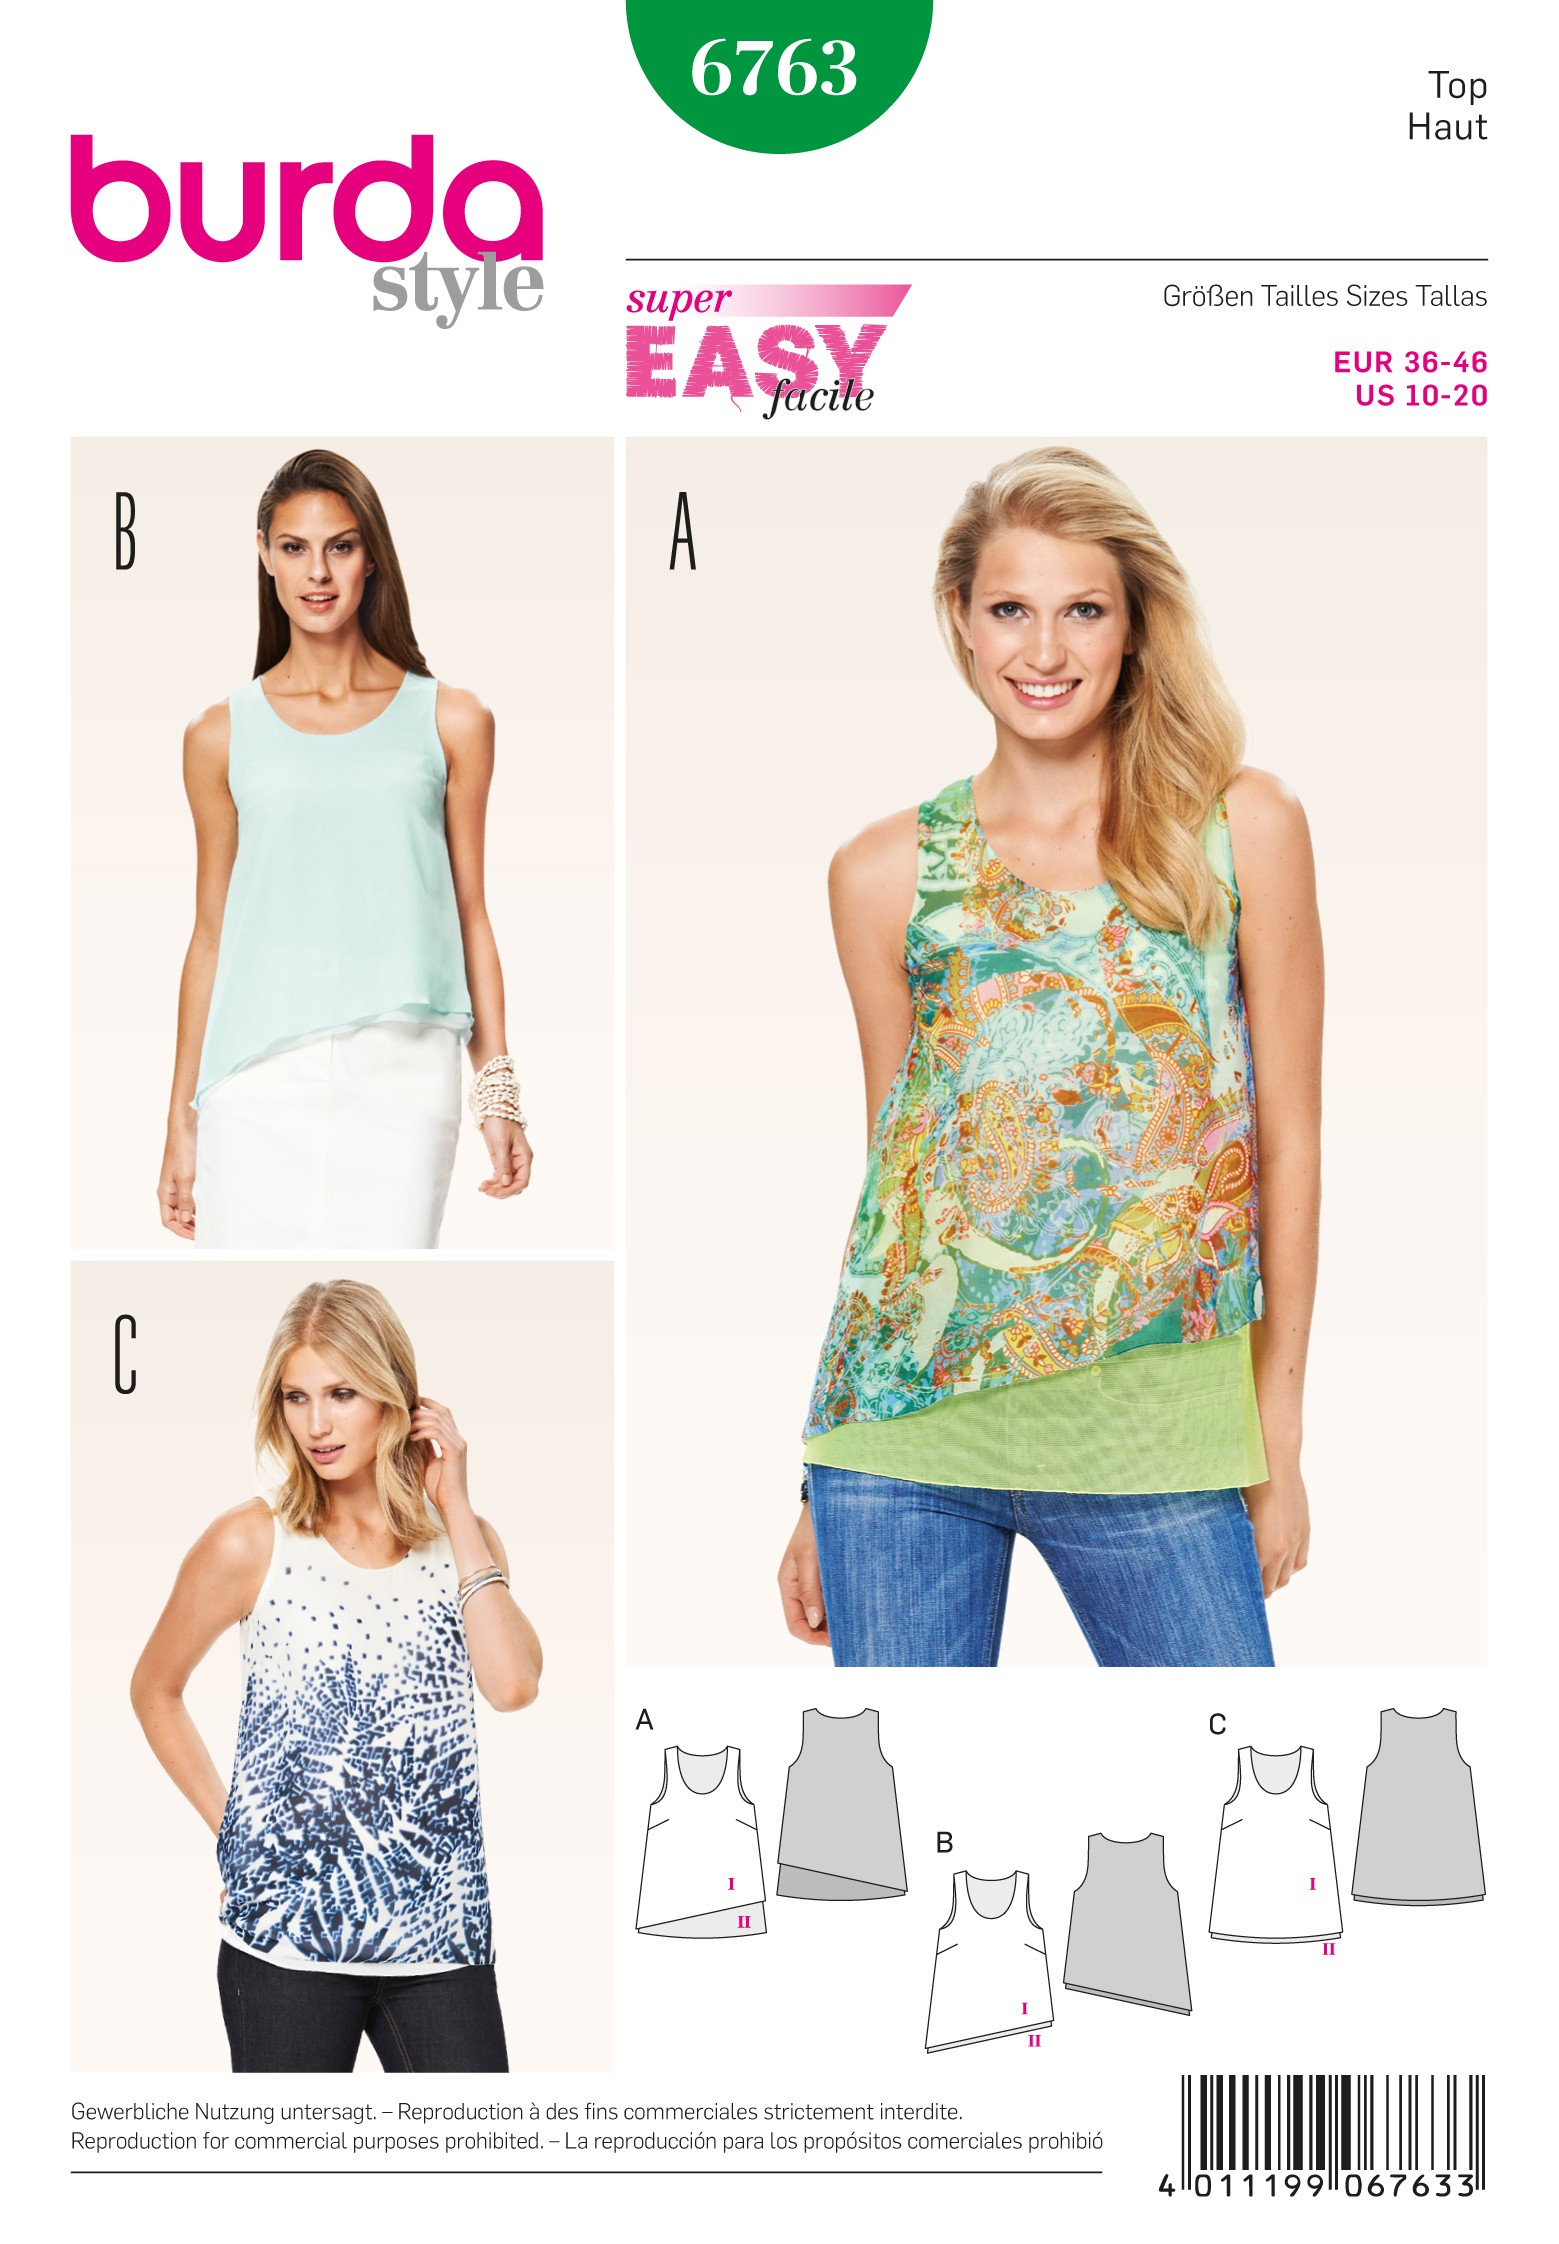 Burda Style Misses' Angled Flowing Shirt Sewing Pattern 6763